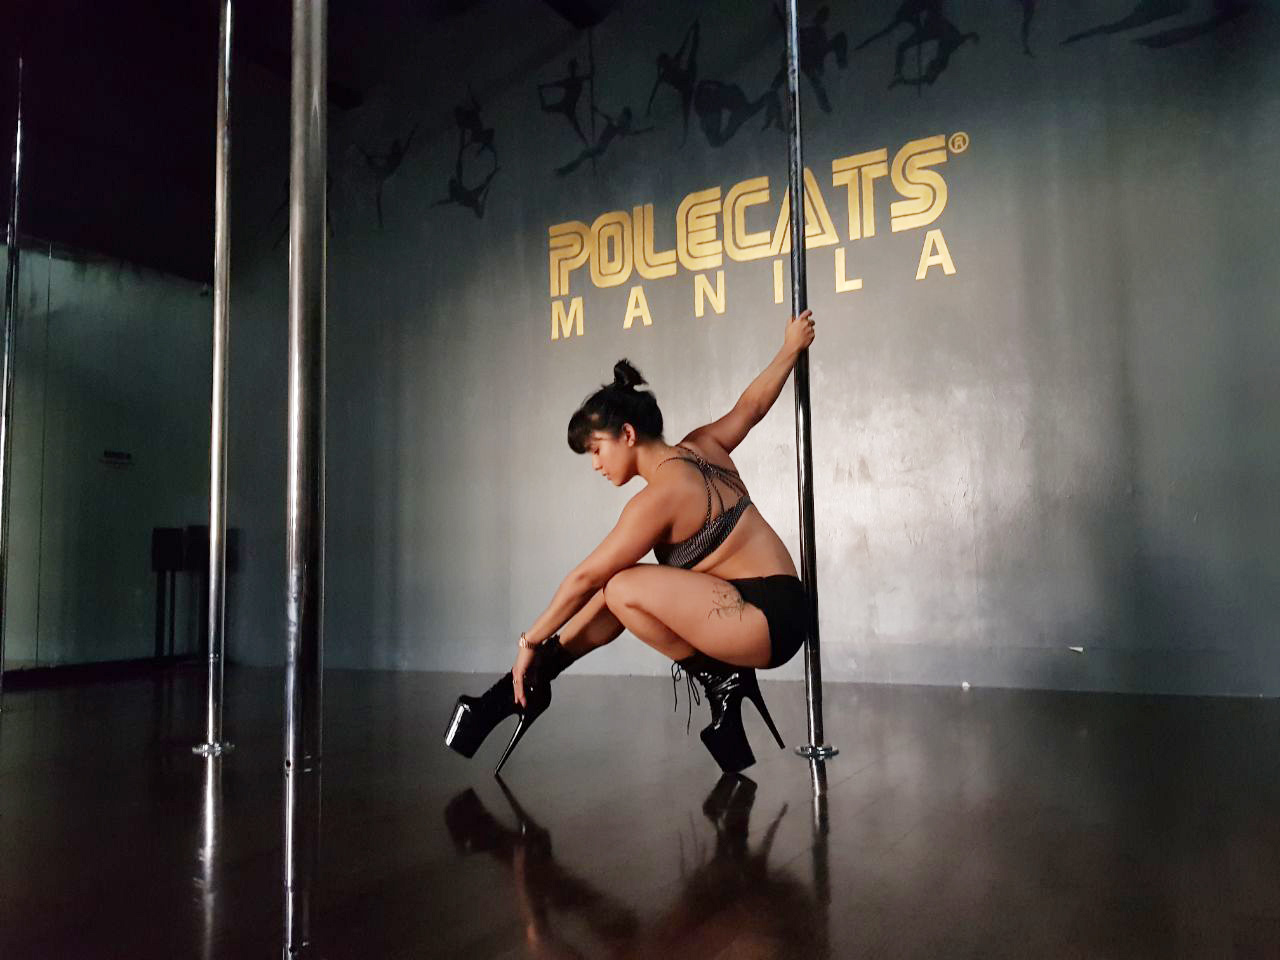 Pole Dance - Beginners welcome, but not for first timers. Become a more well-rounded pole dancer! This class will focus on choreography, with routines that will improve on your movement, coordination and confidence on the pole. Combine your flow with familiar tricks and spins, while exploring different dance styles and ways to move! Men and Women are welcome to take this class!